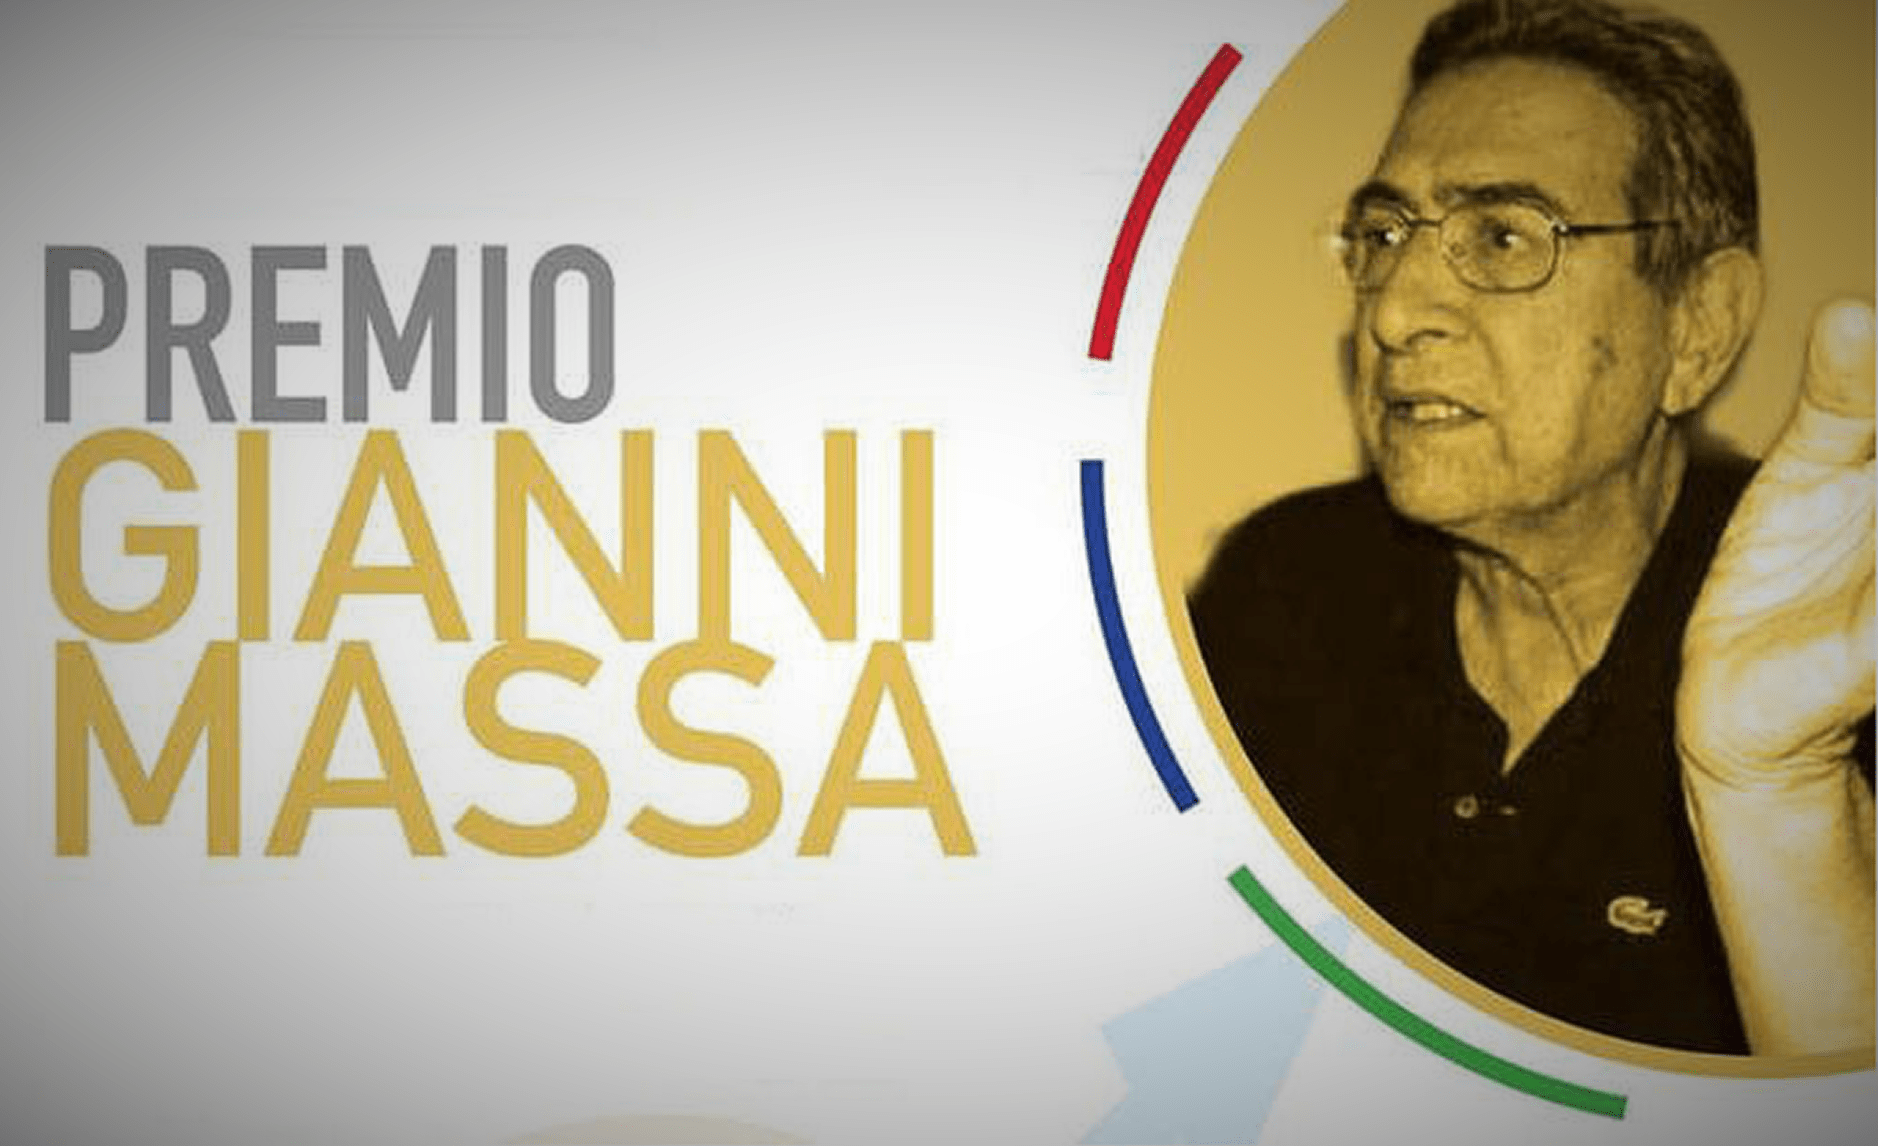 premio-massa-gianni